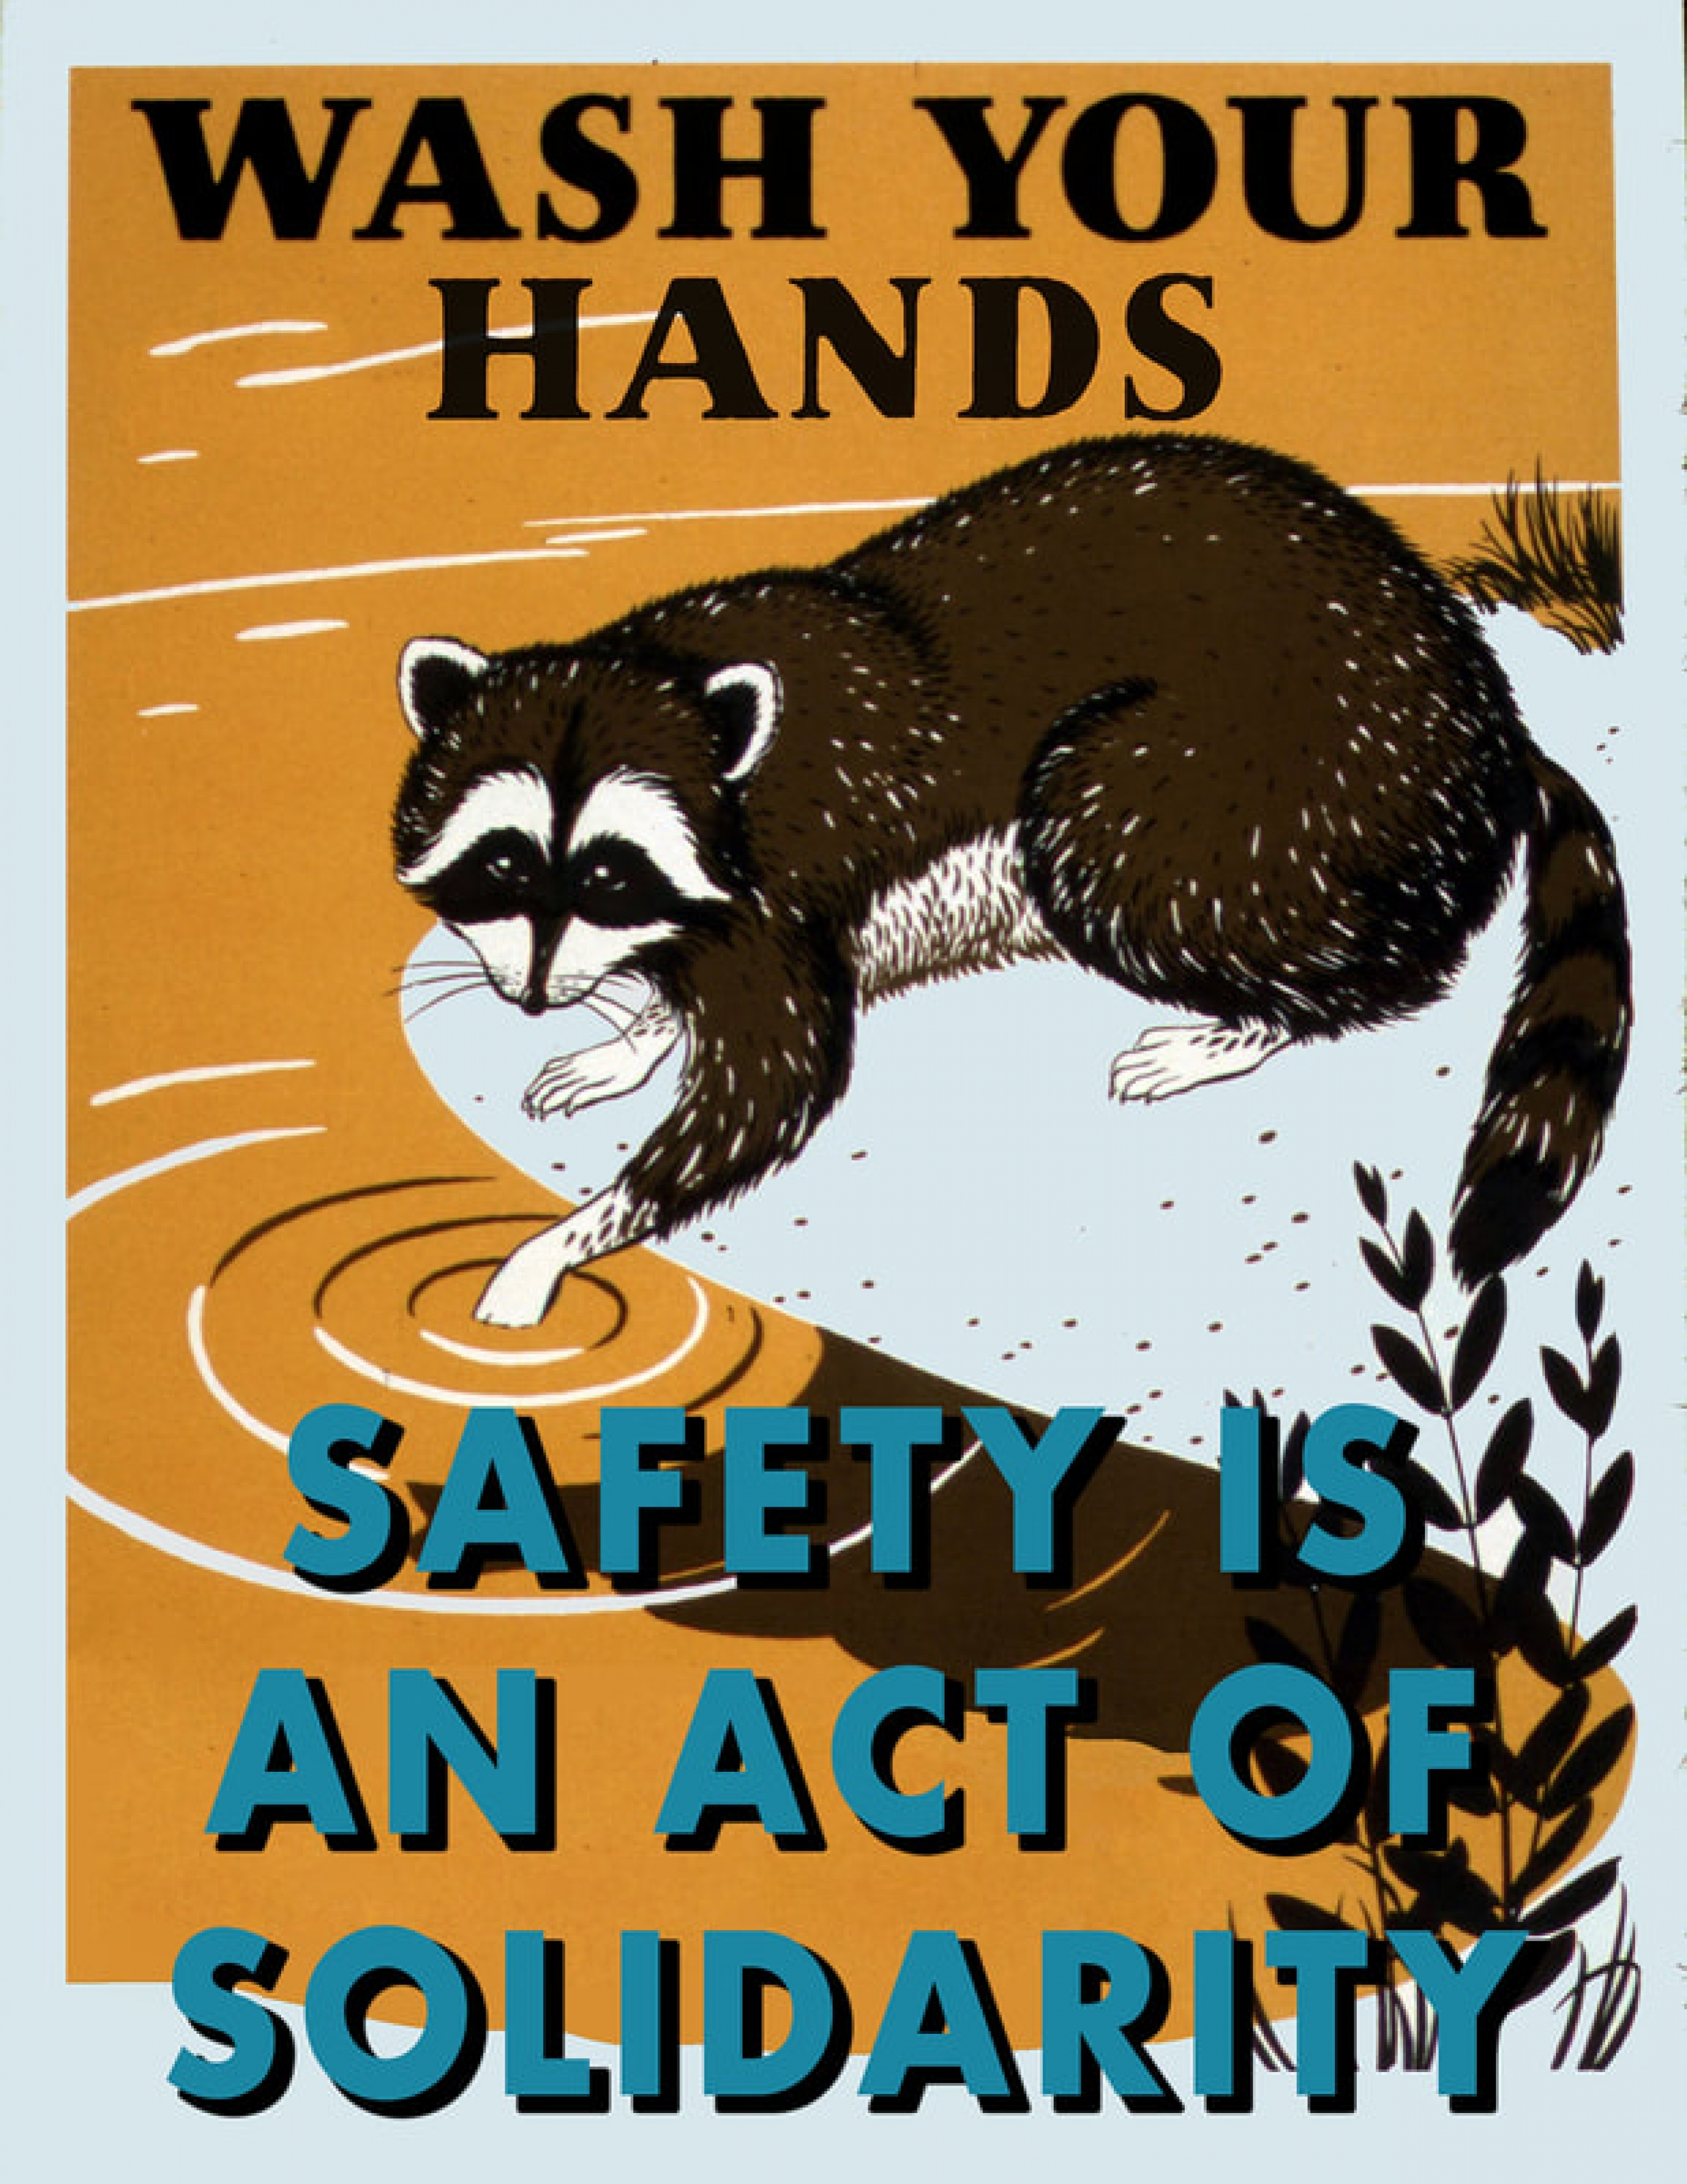 This poster submitted by an anonymous artist conveys a public service announcement.